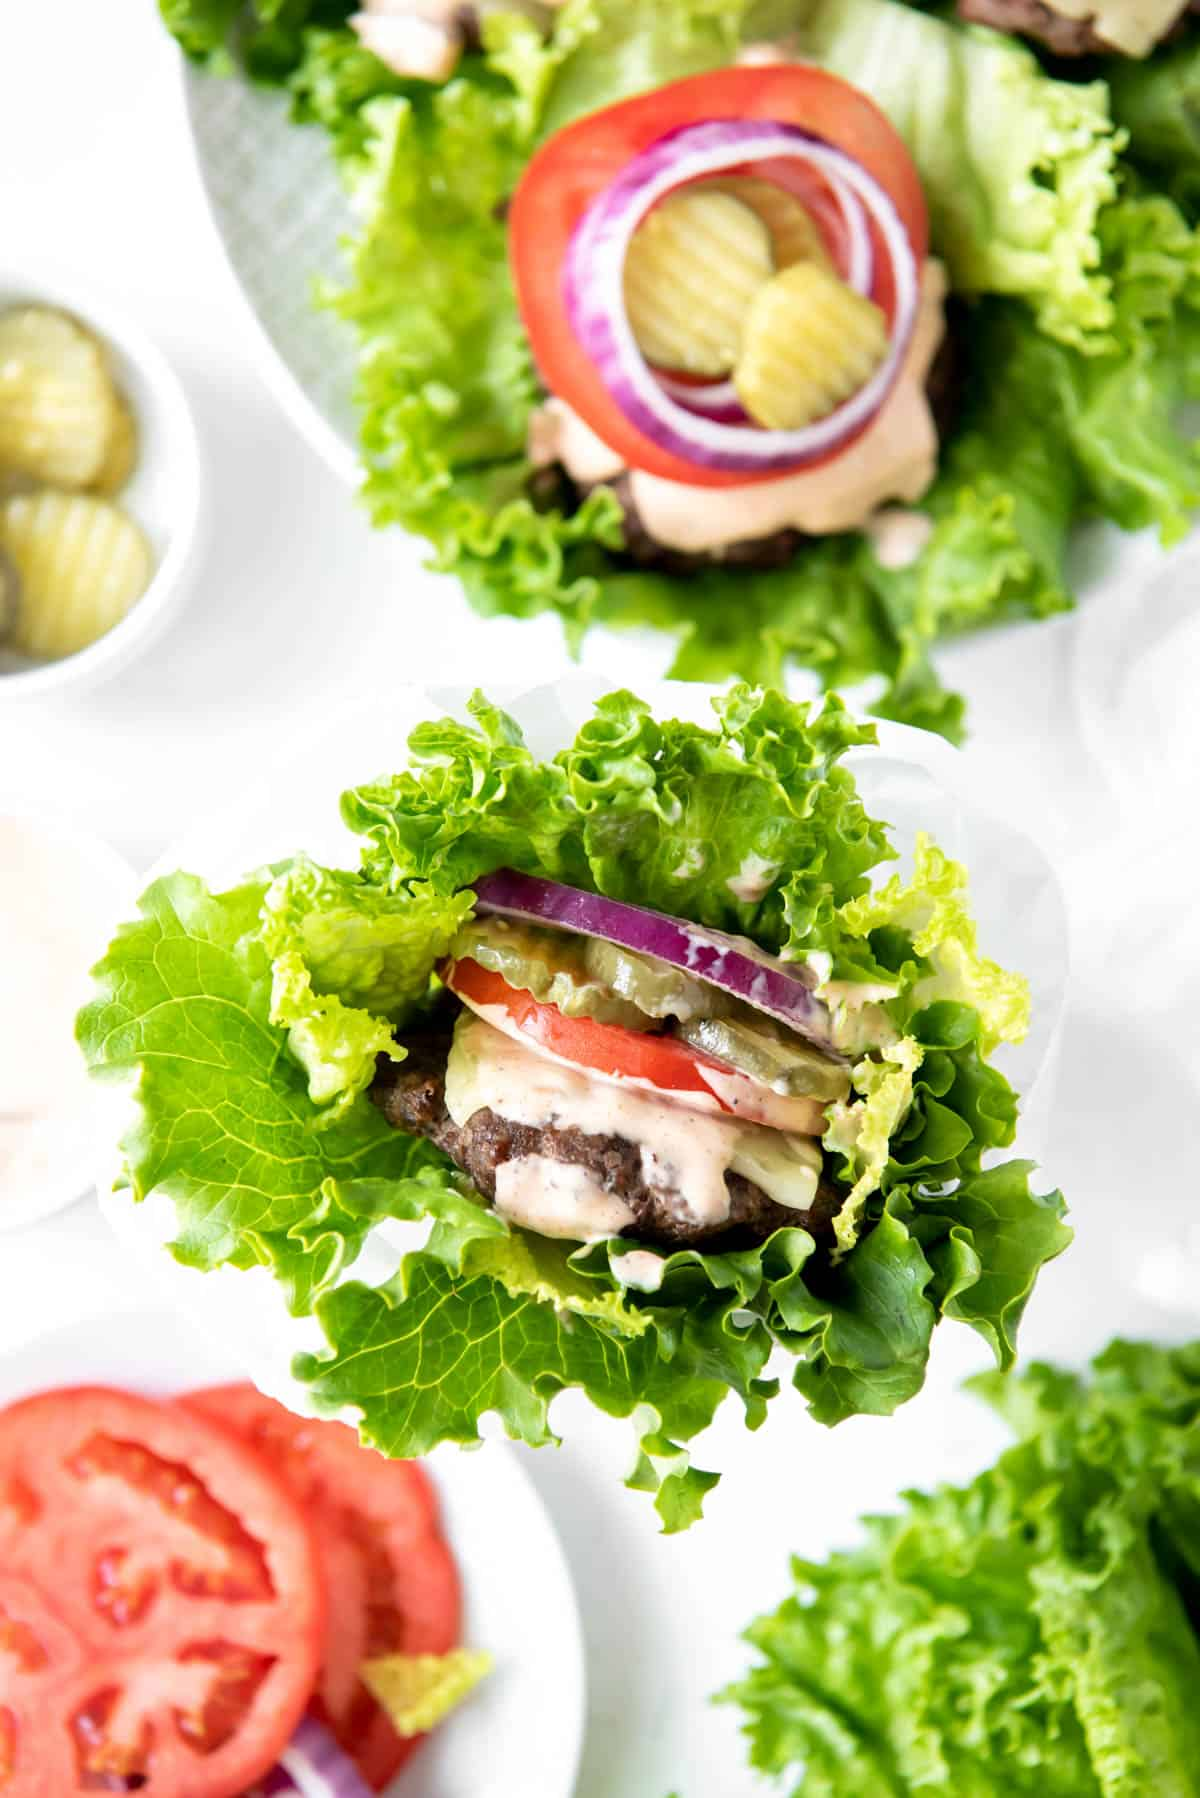 burger with homemade burger sauce, tomato and onion in a lettuce wrap